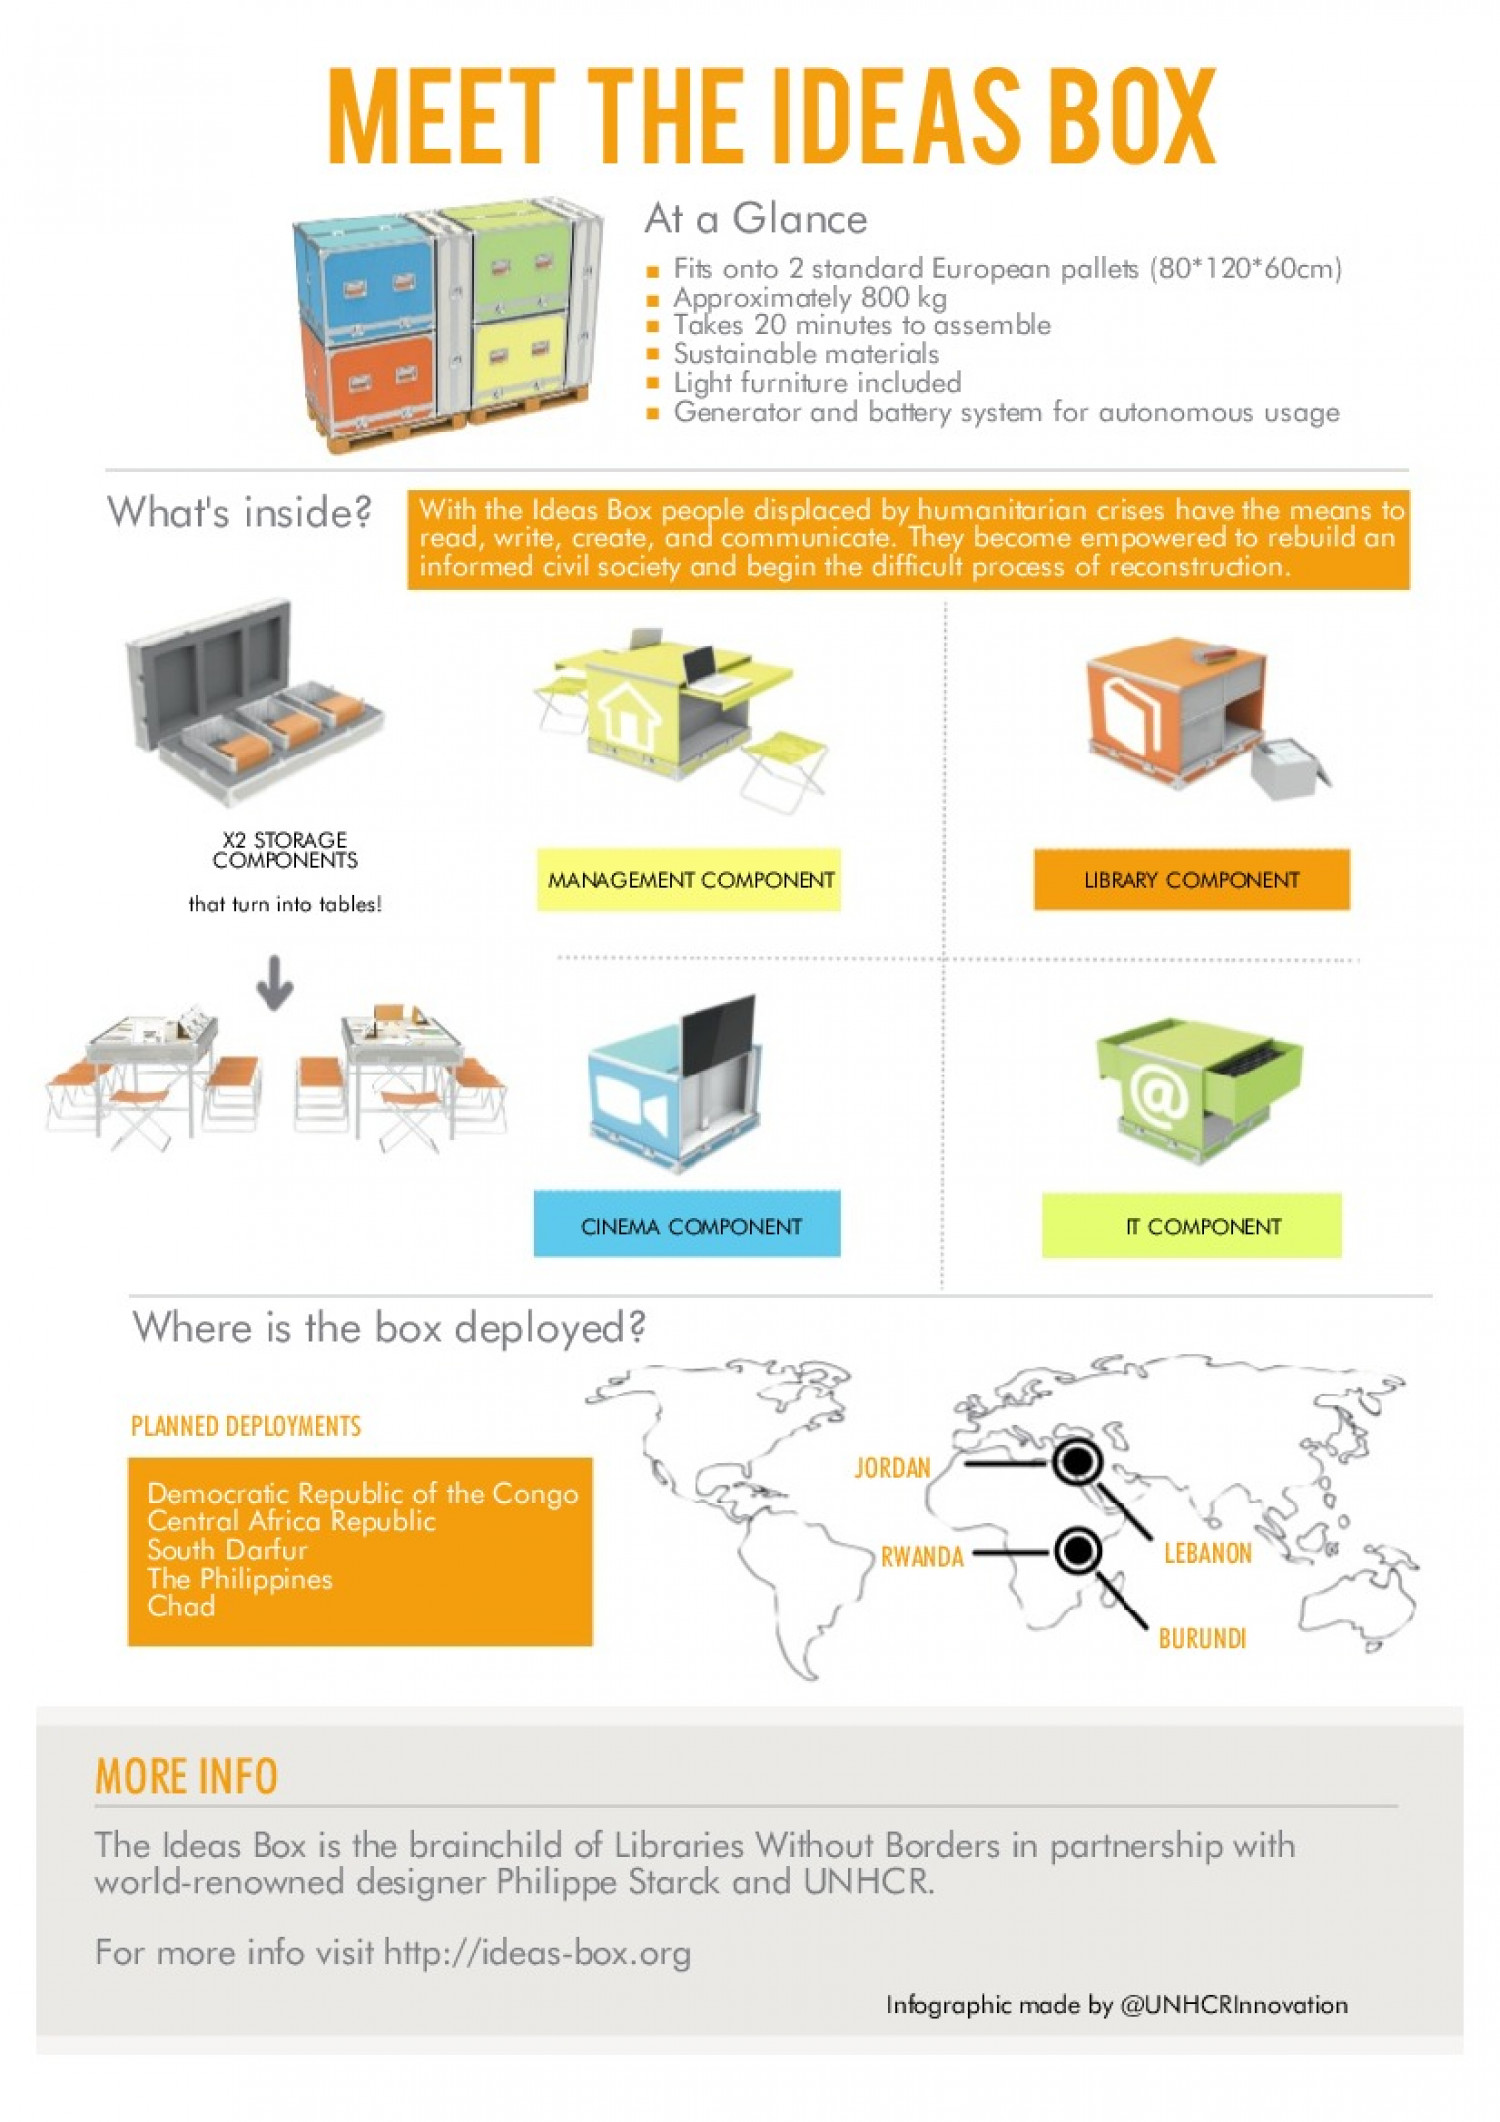 Meet the Ideas Box Infographic